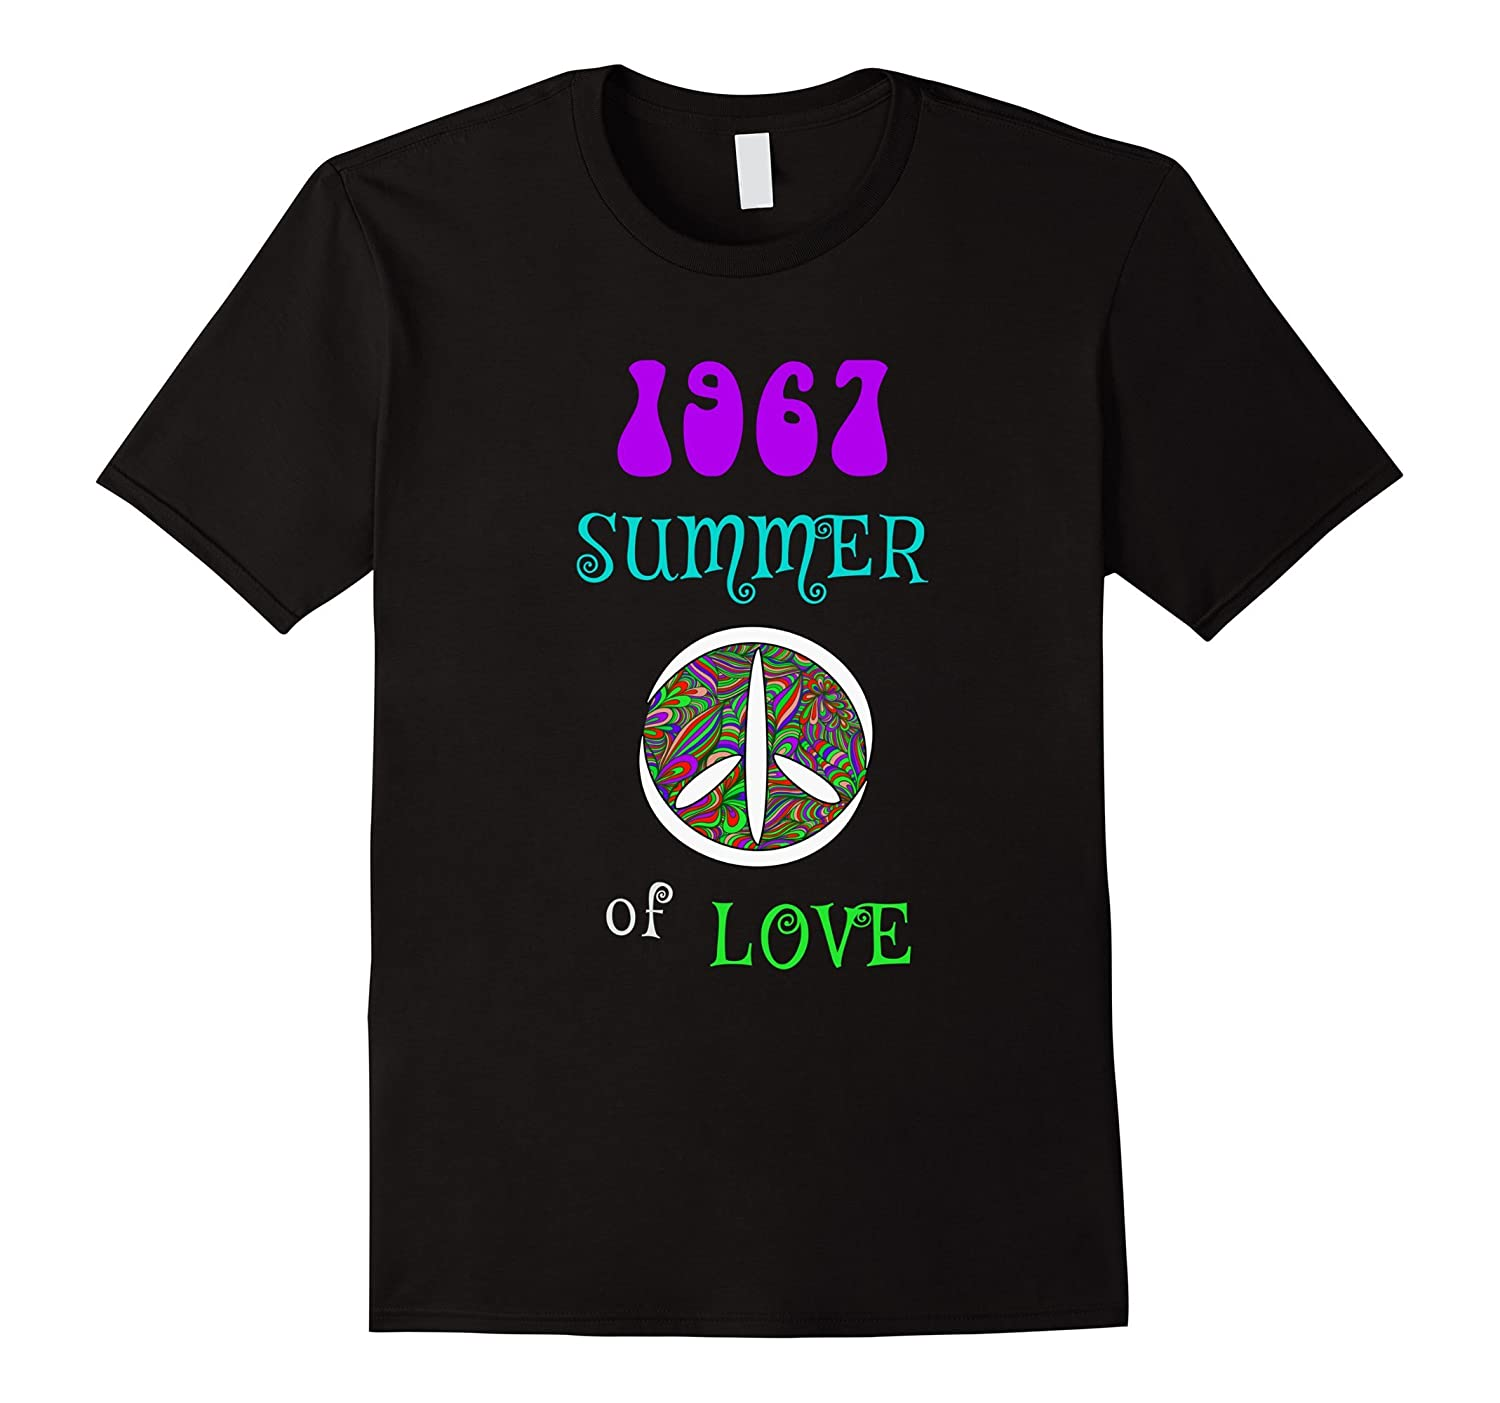 1967 Summer of Love Hippie Peace Sign T-shirt-PL